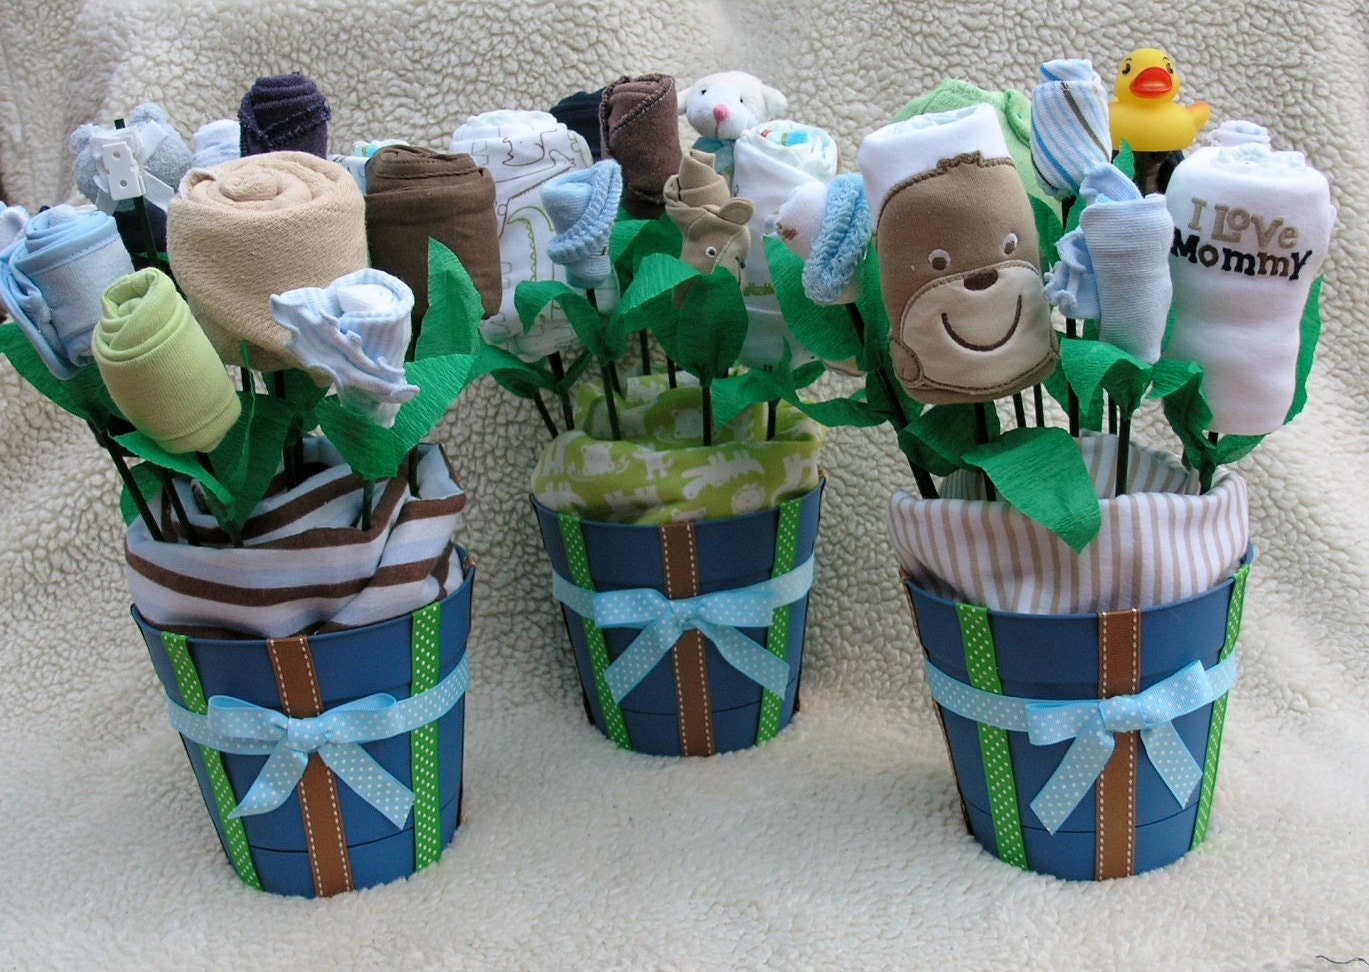 Duck baby shower on pinterest rubber duck baby boy for Baby shower decoration ideas boy